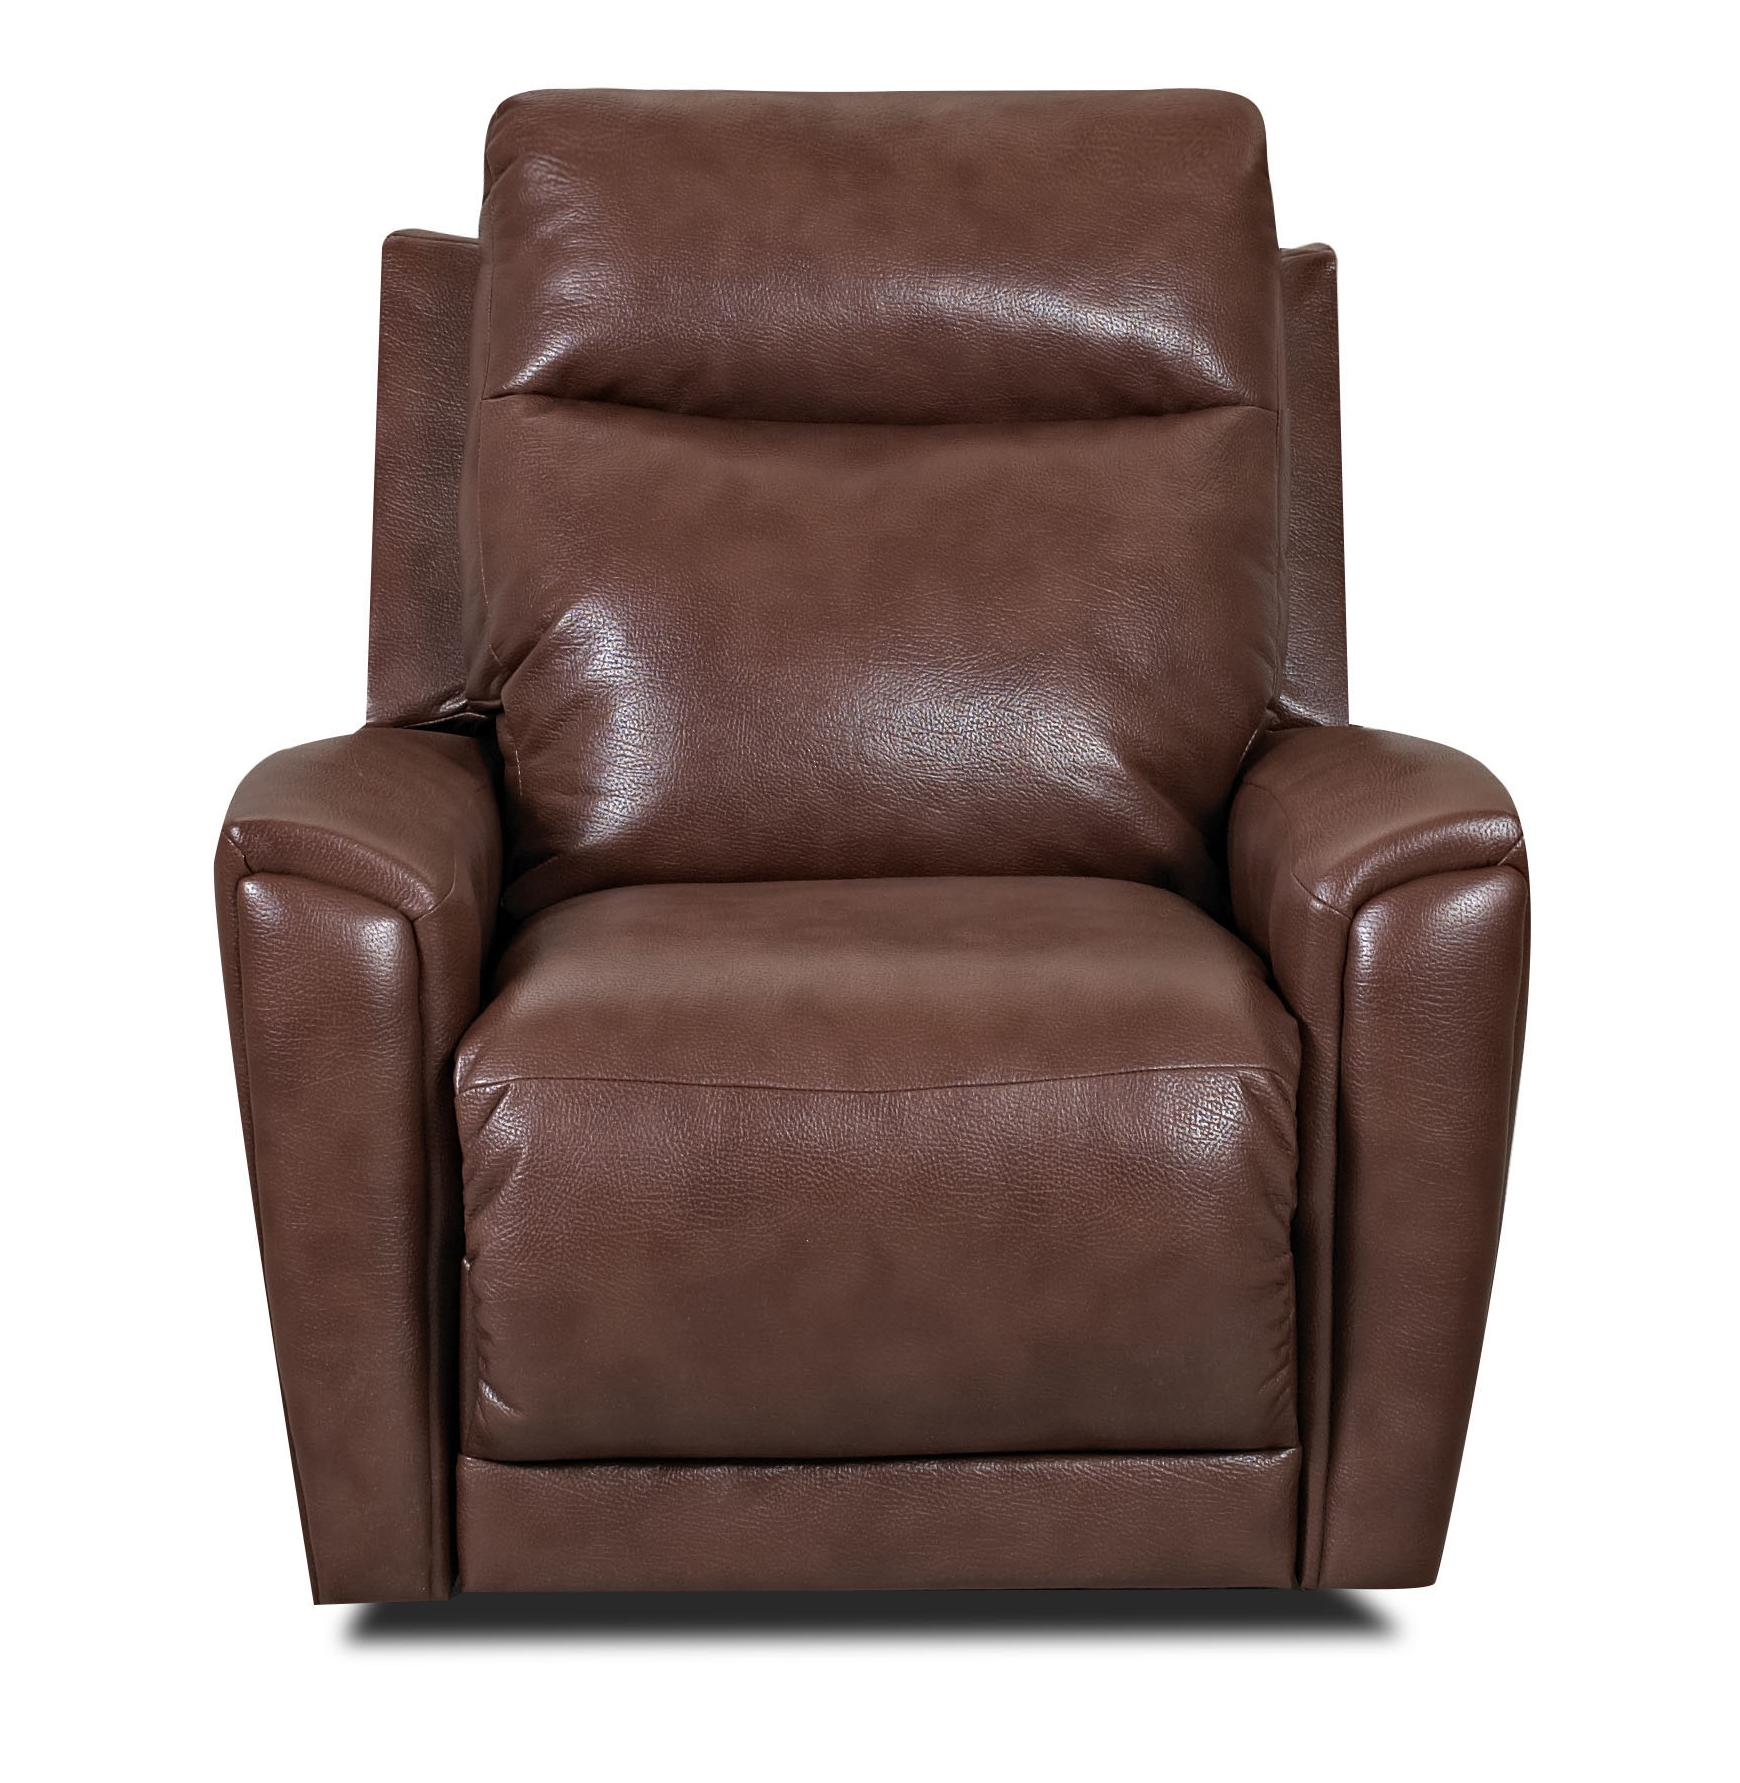 Transitional Swivel Gliding Reclining Chair